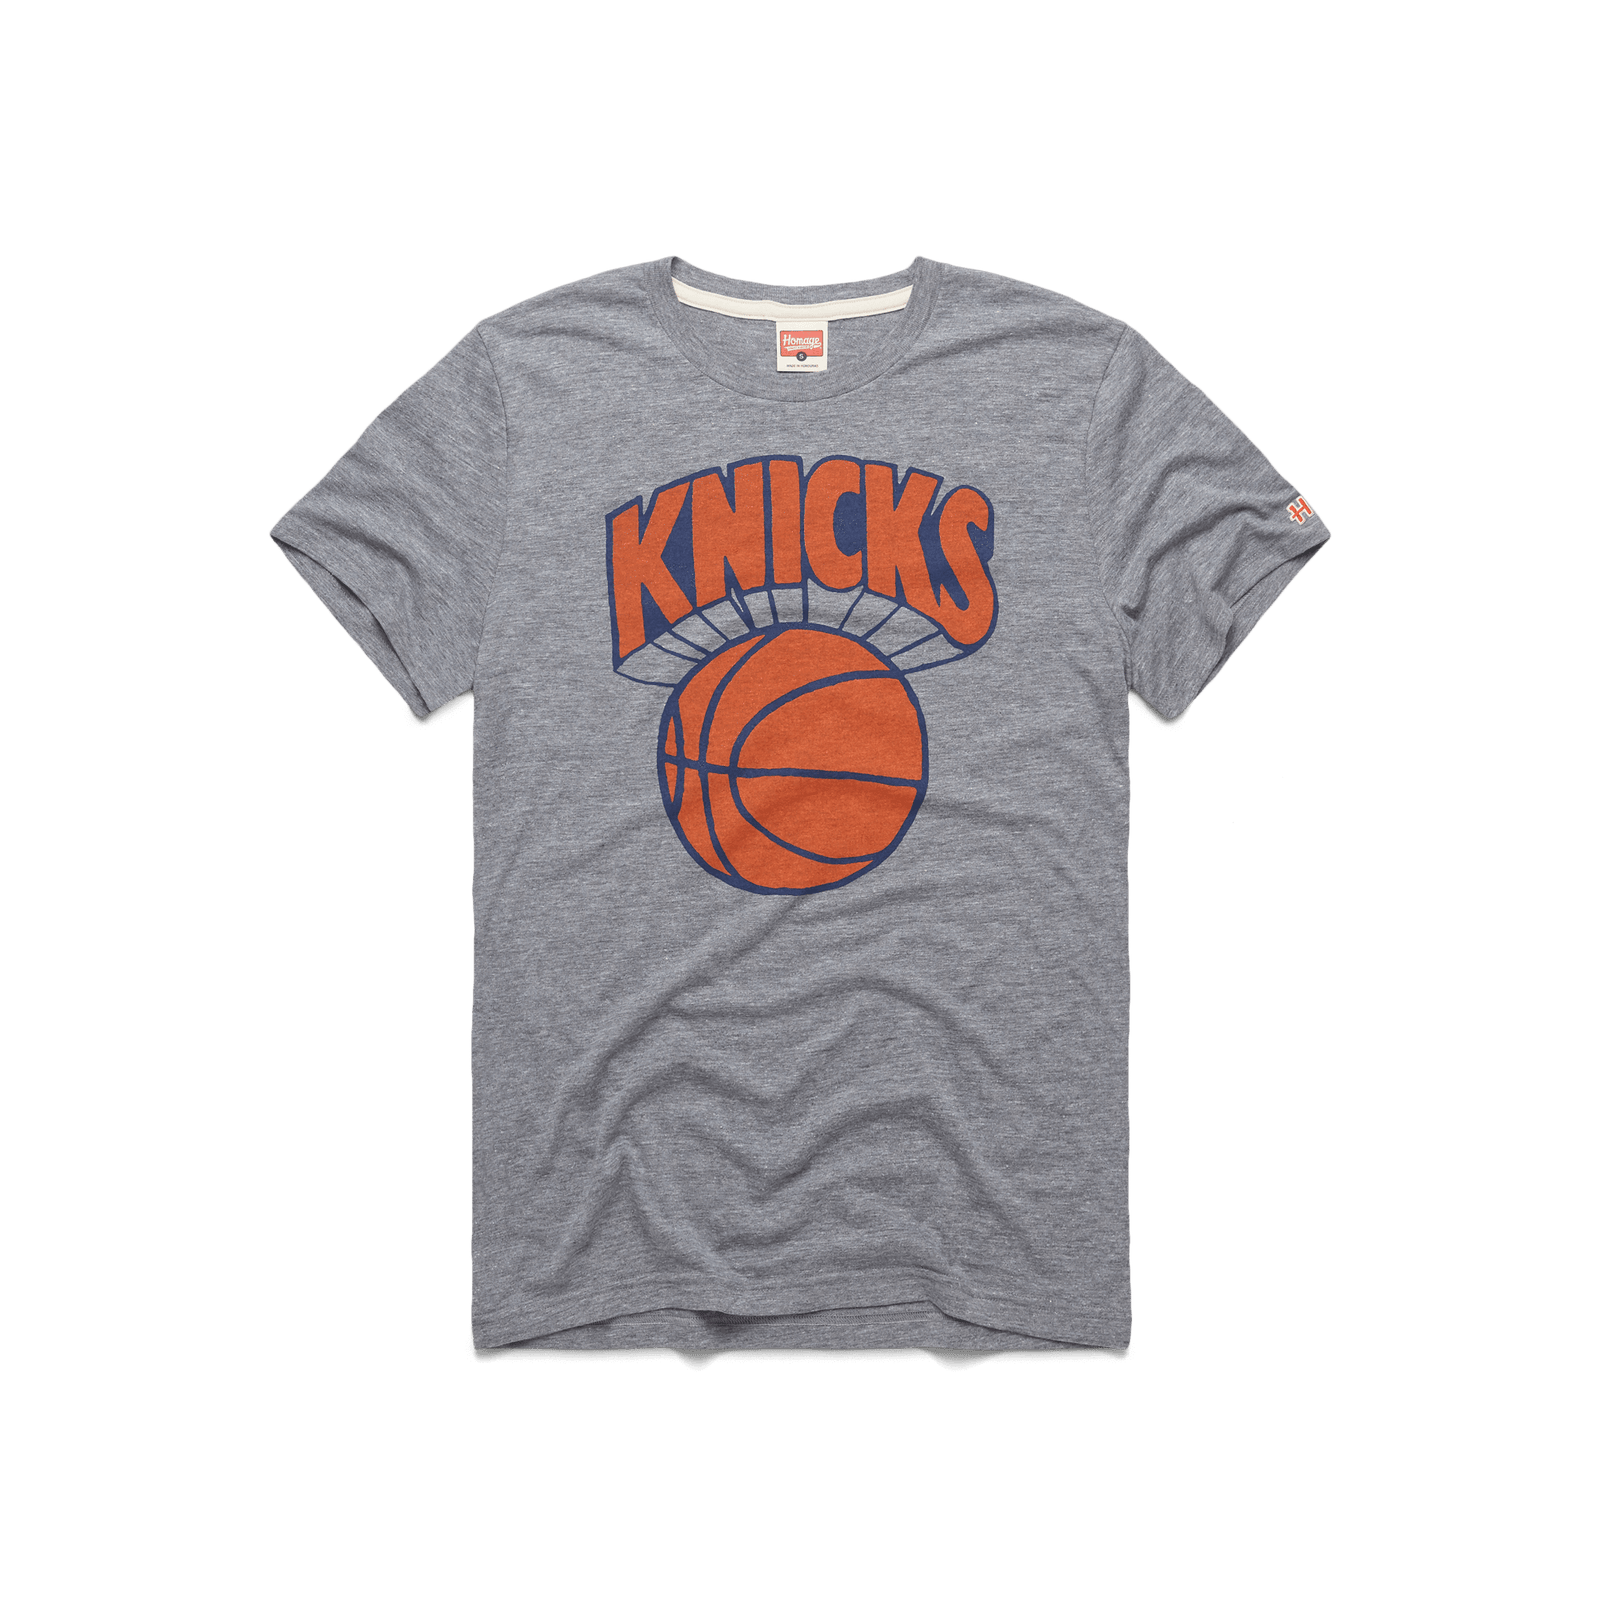 New York Knicks '83